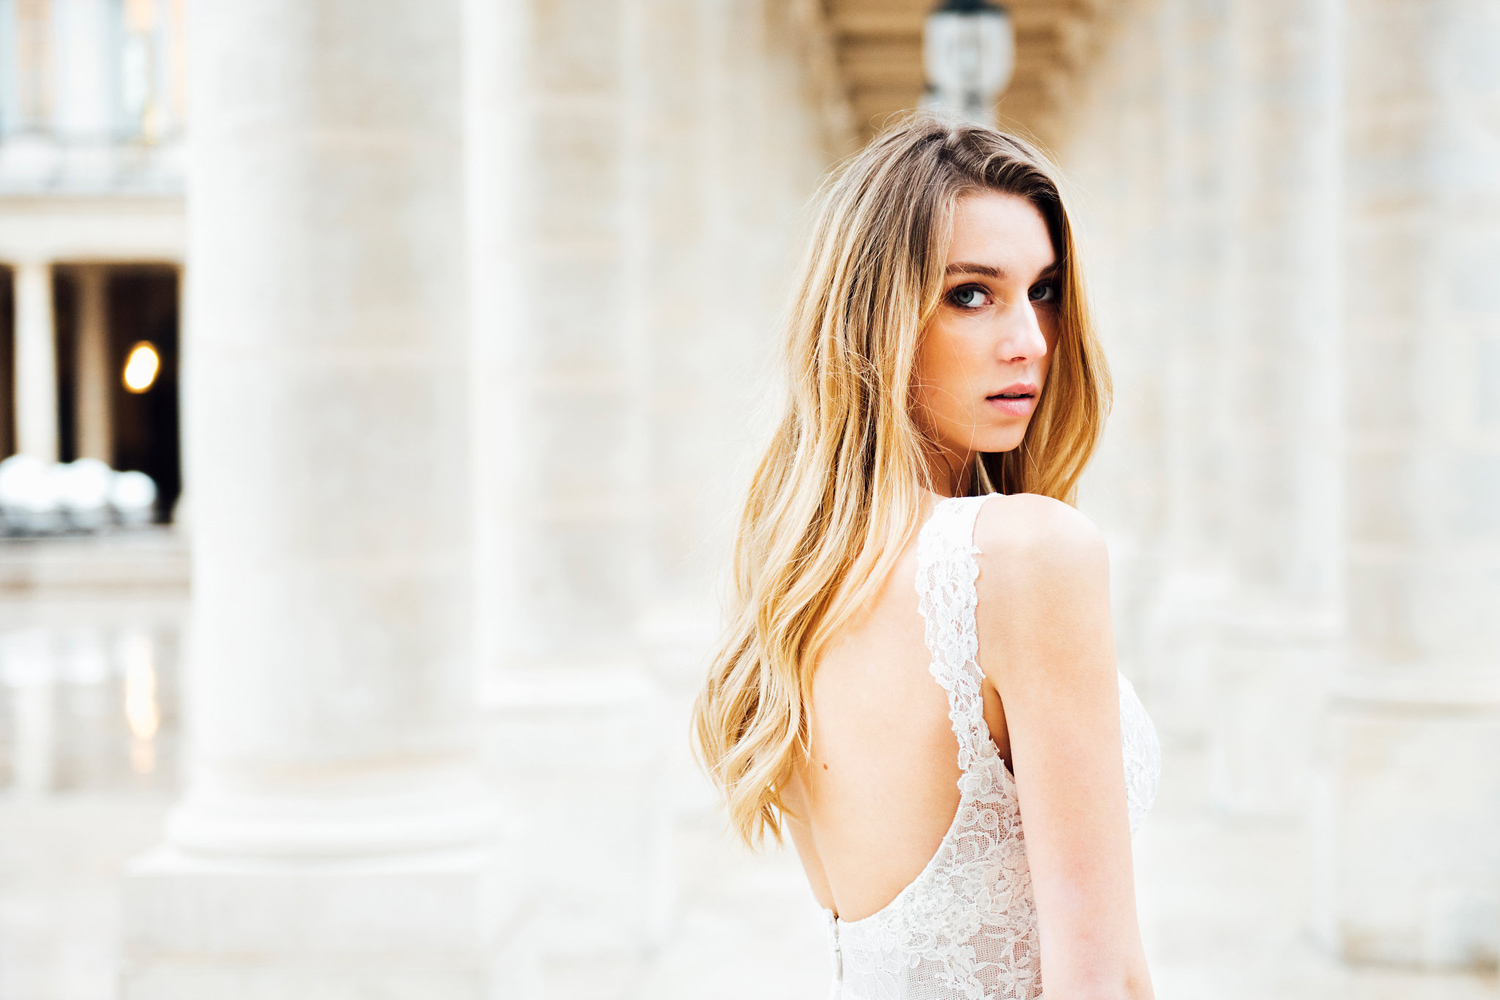 katie mitchell monique lhuillier bridal paris france wedding photographer_22.jpg